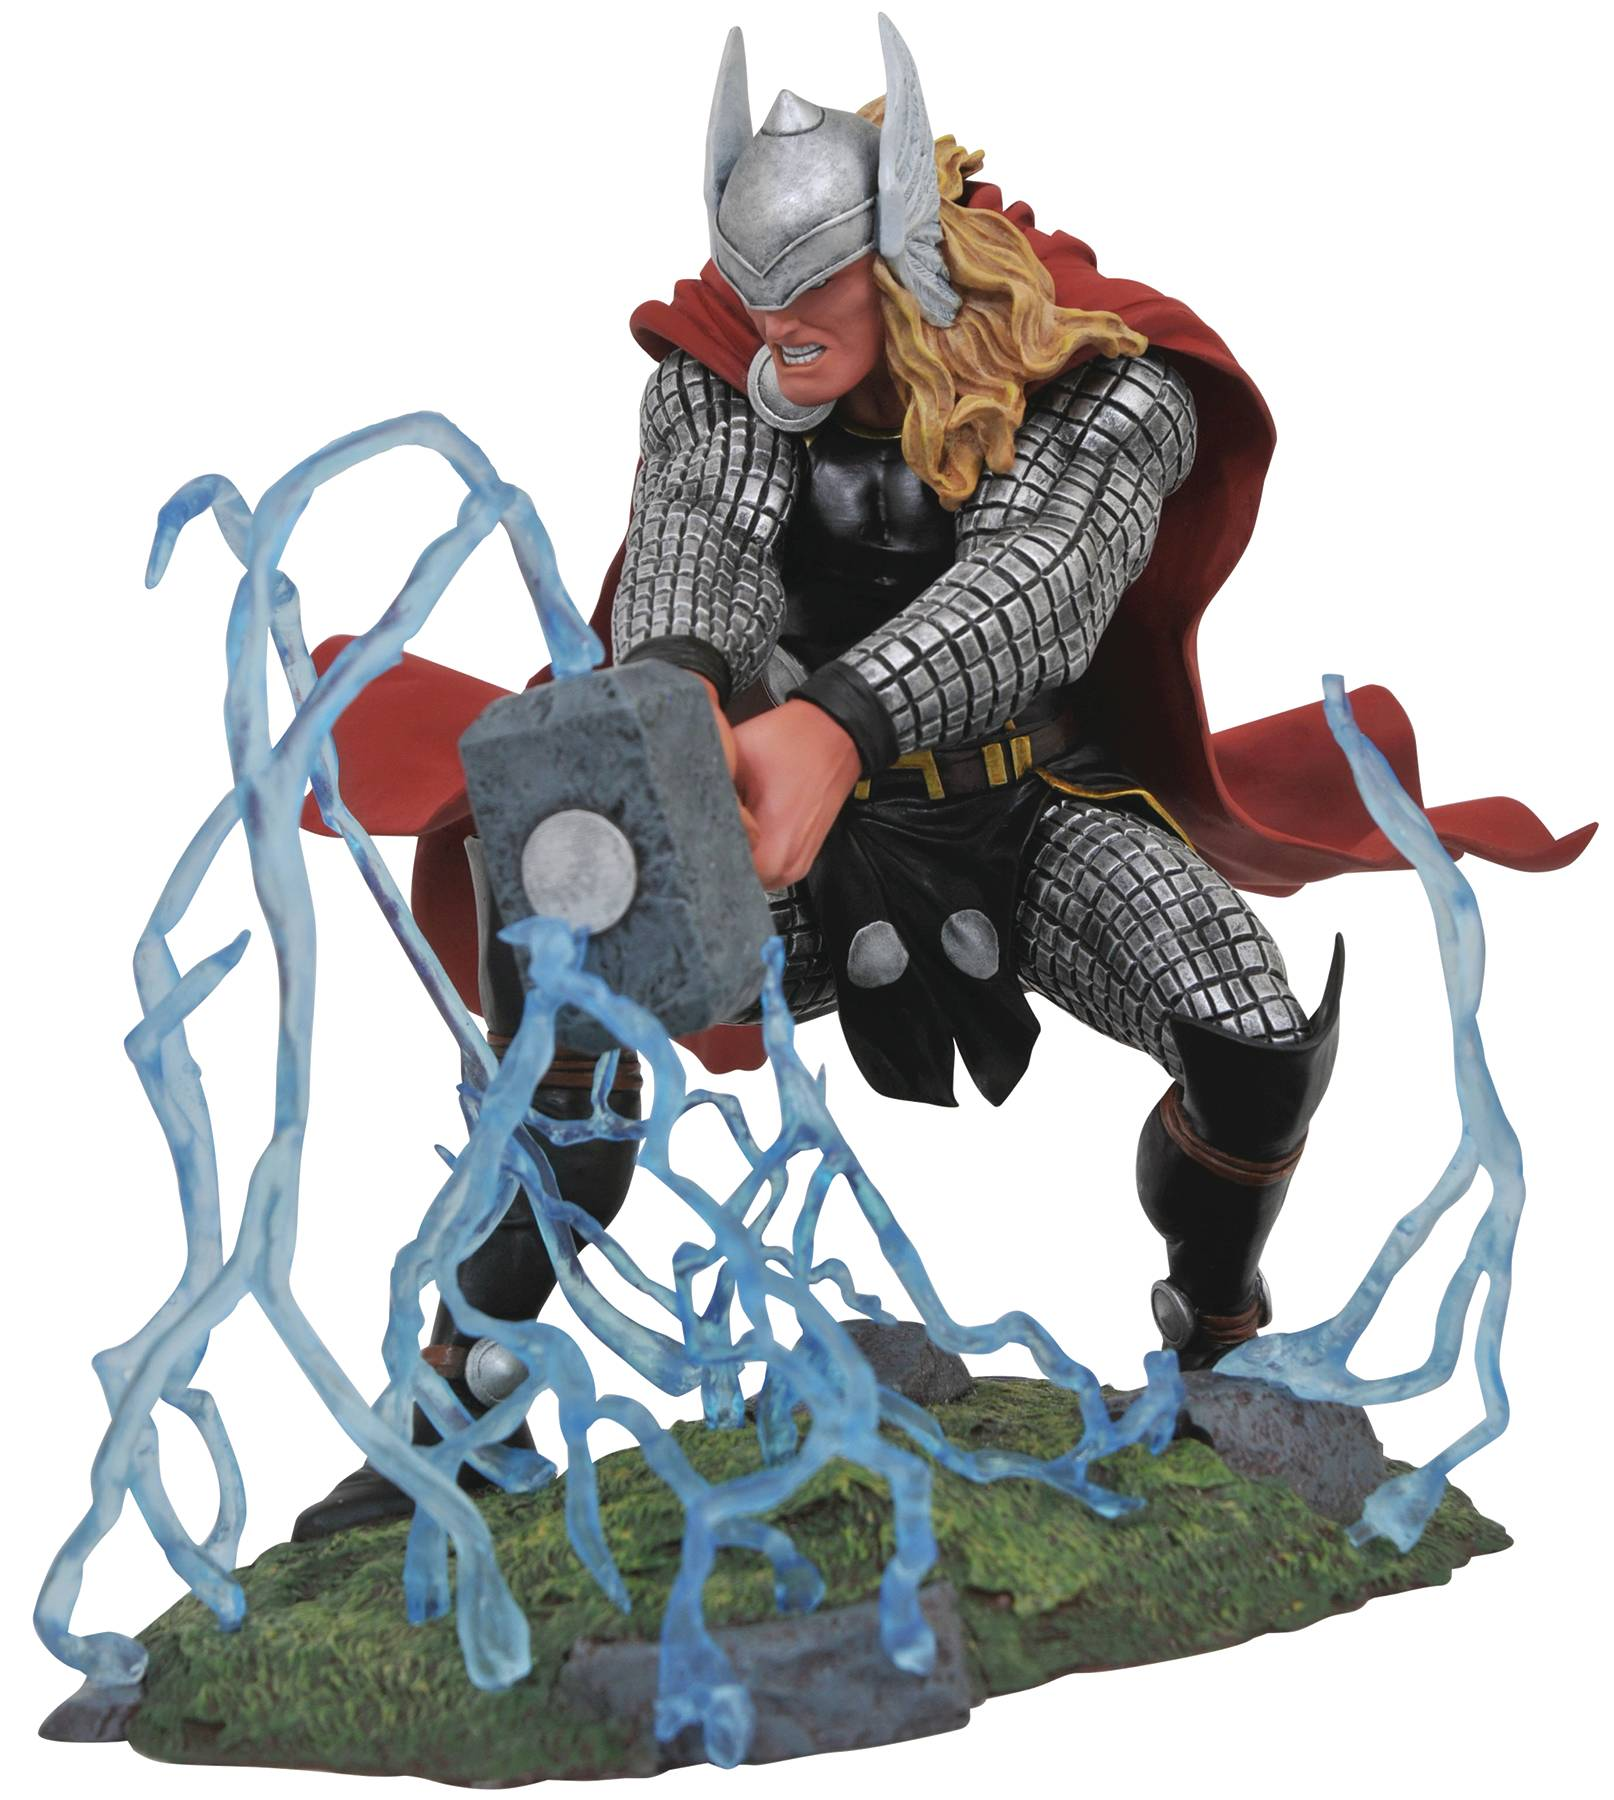 Diamond Marvel Gallery Thor Statue